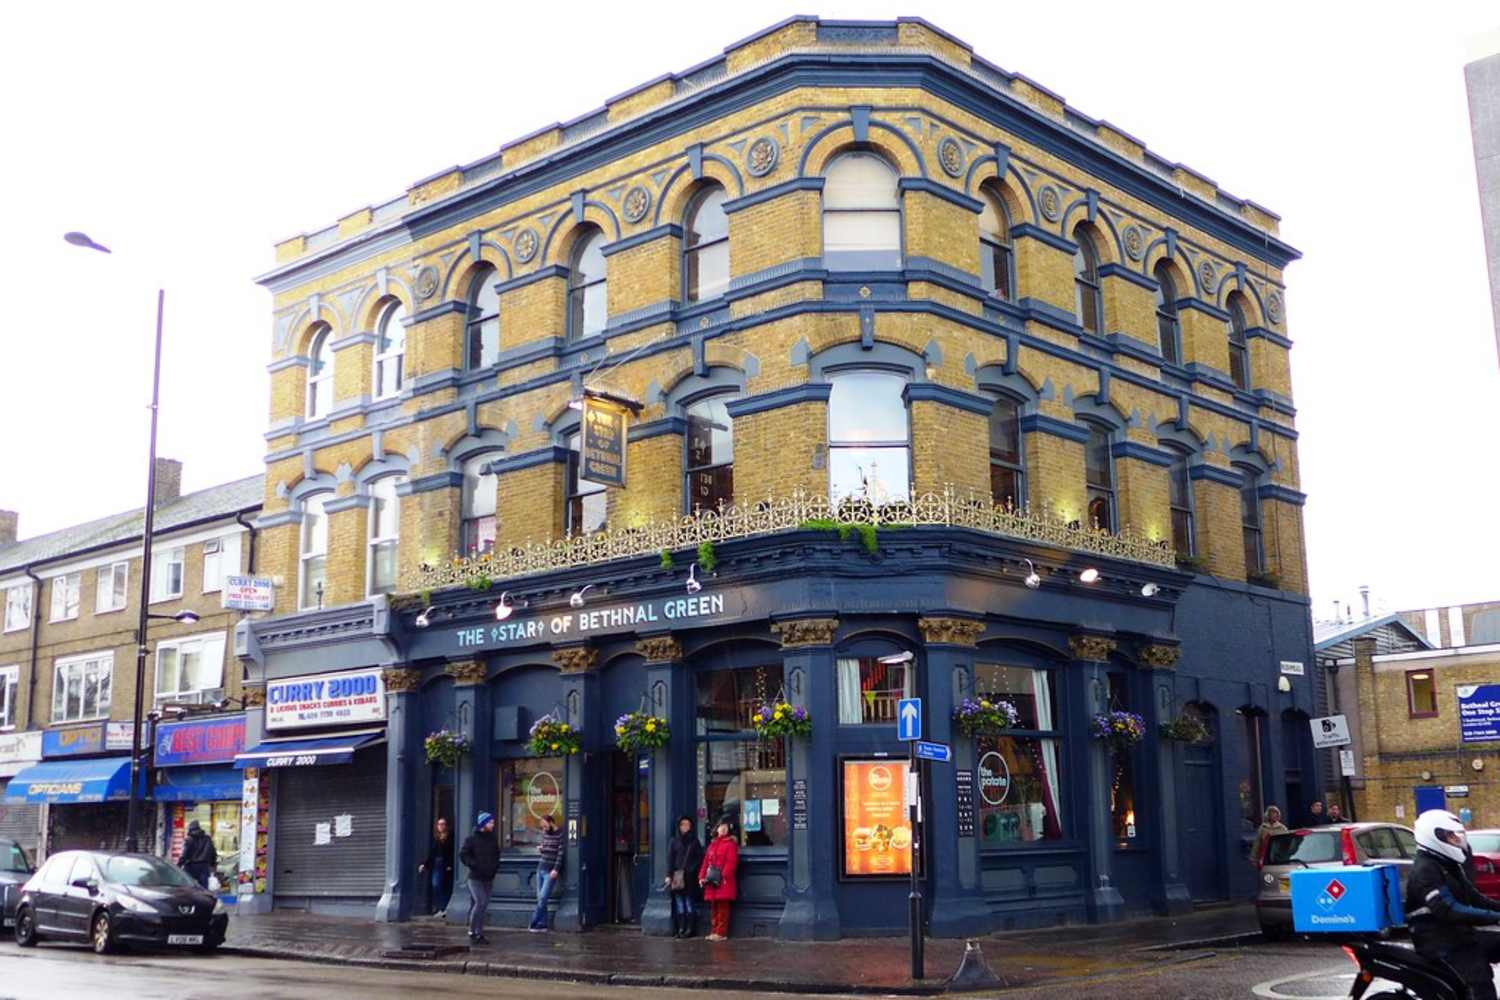 The outside of The Star of Bethnal Green